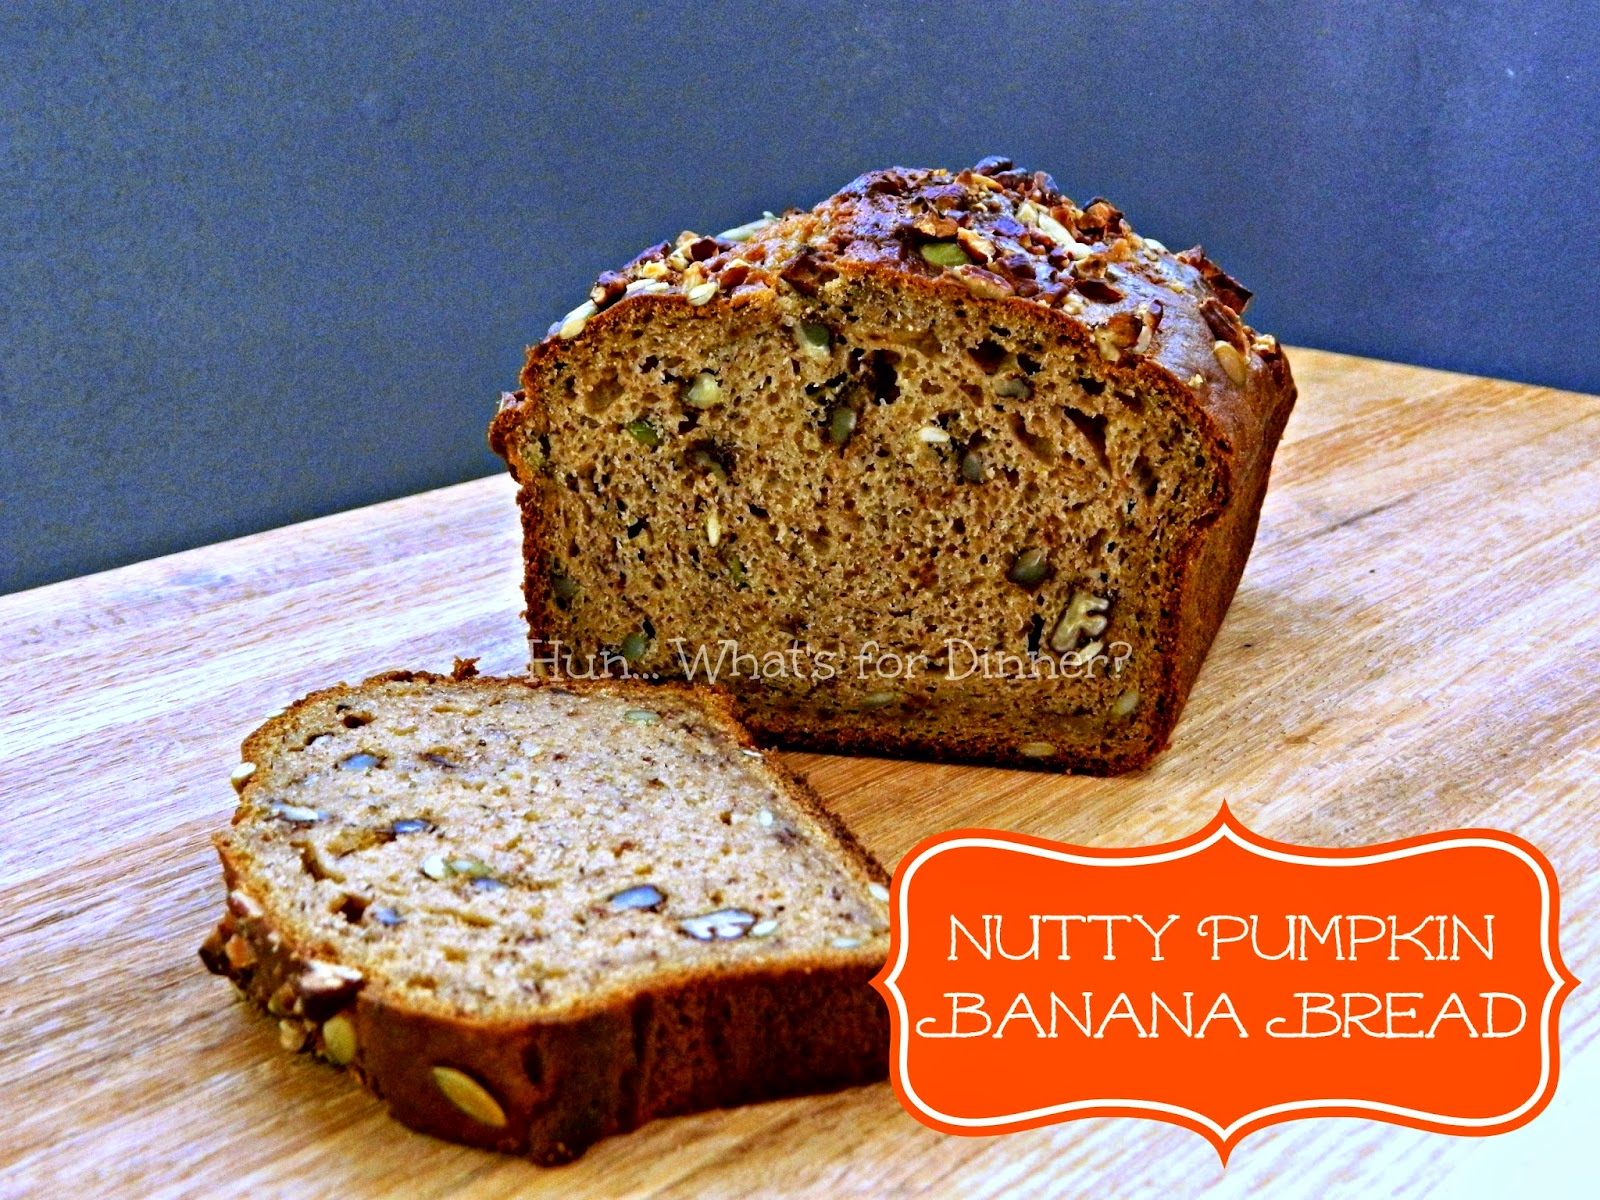 Hun... What's for Dinner?: Nutty Pumpkin Banana Bread